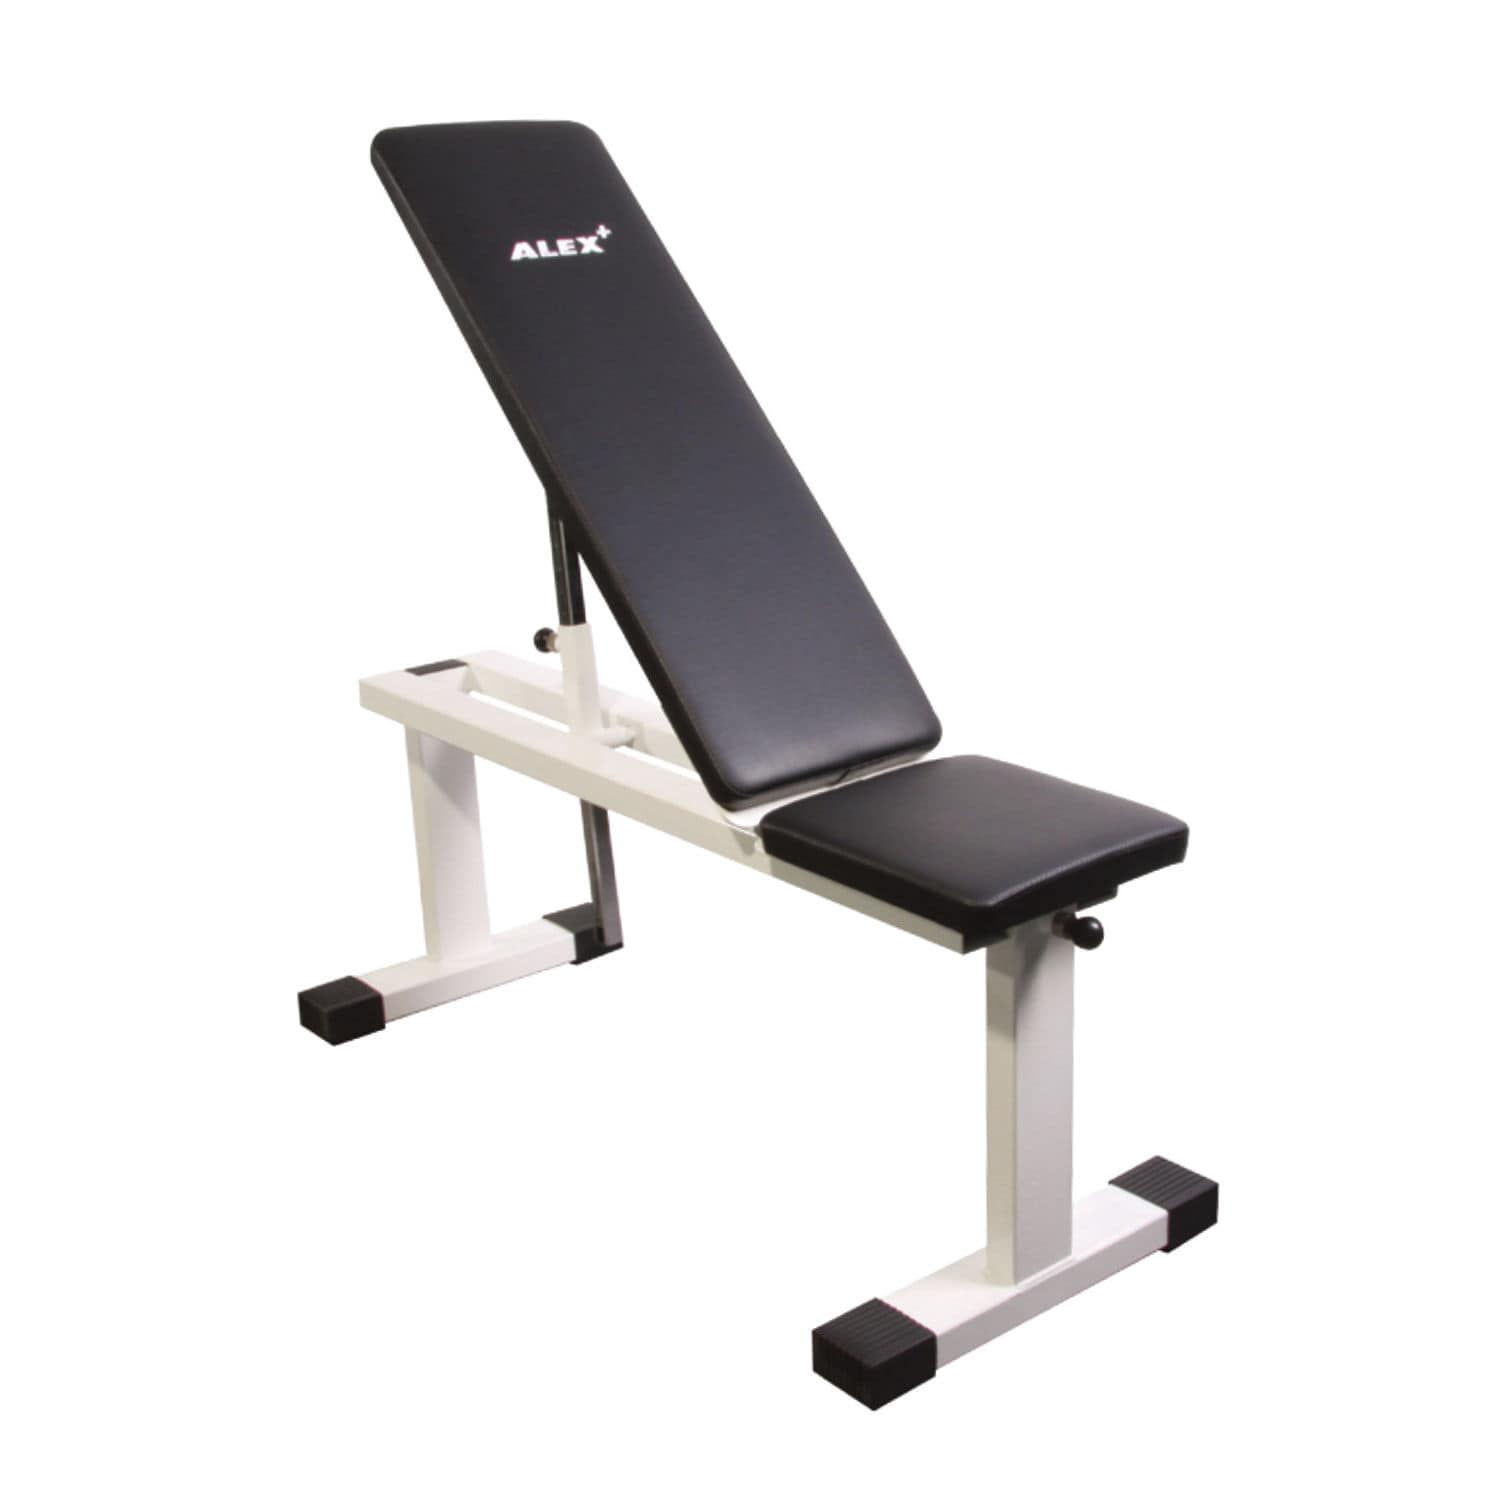 Adjustable weight training bench - BH-1200 - Alexandave